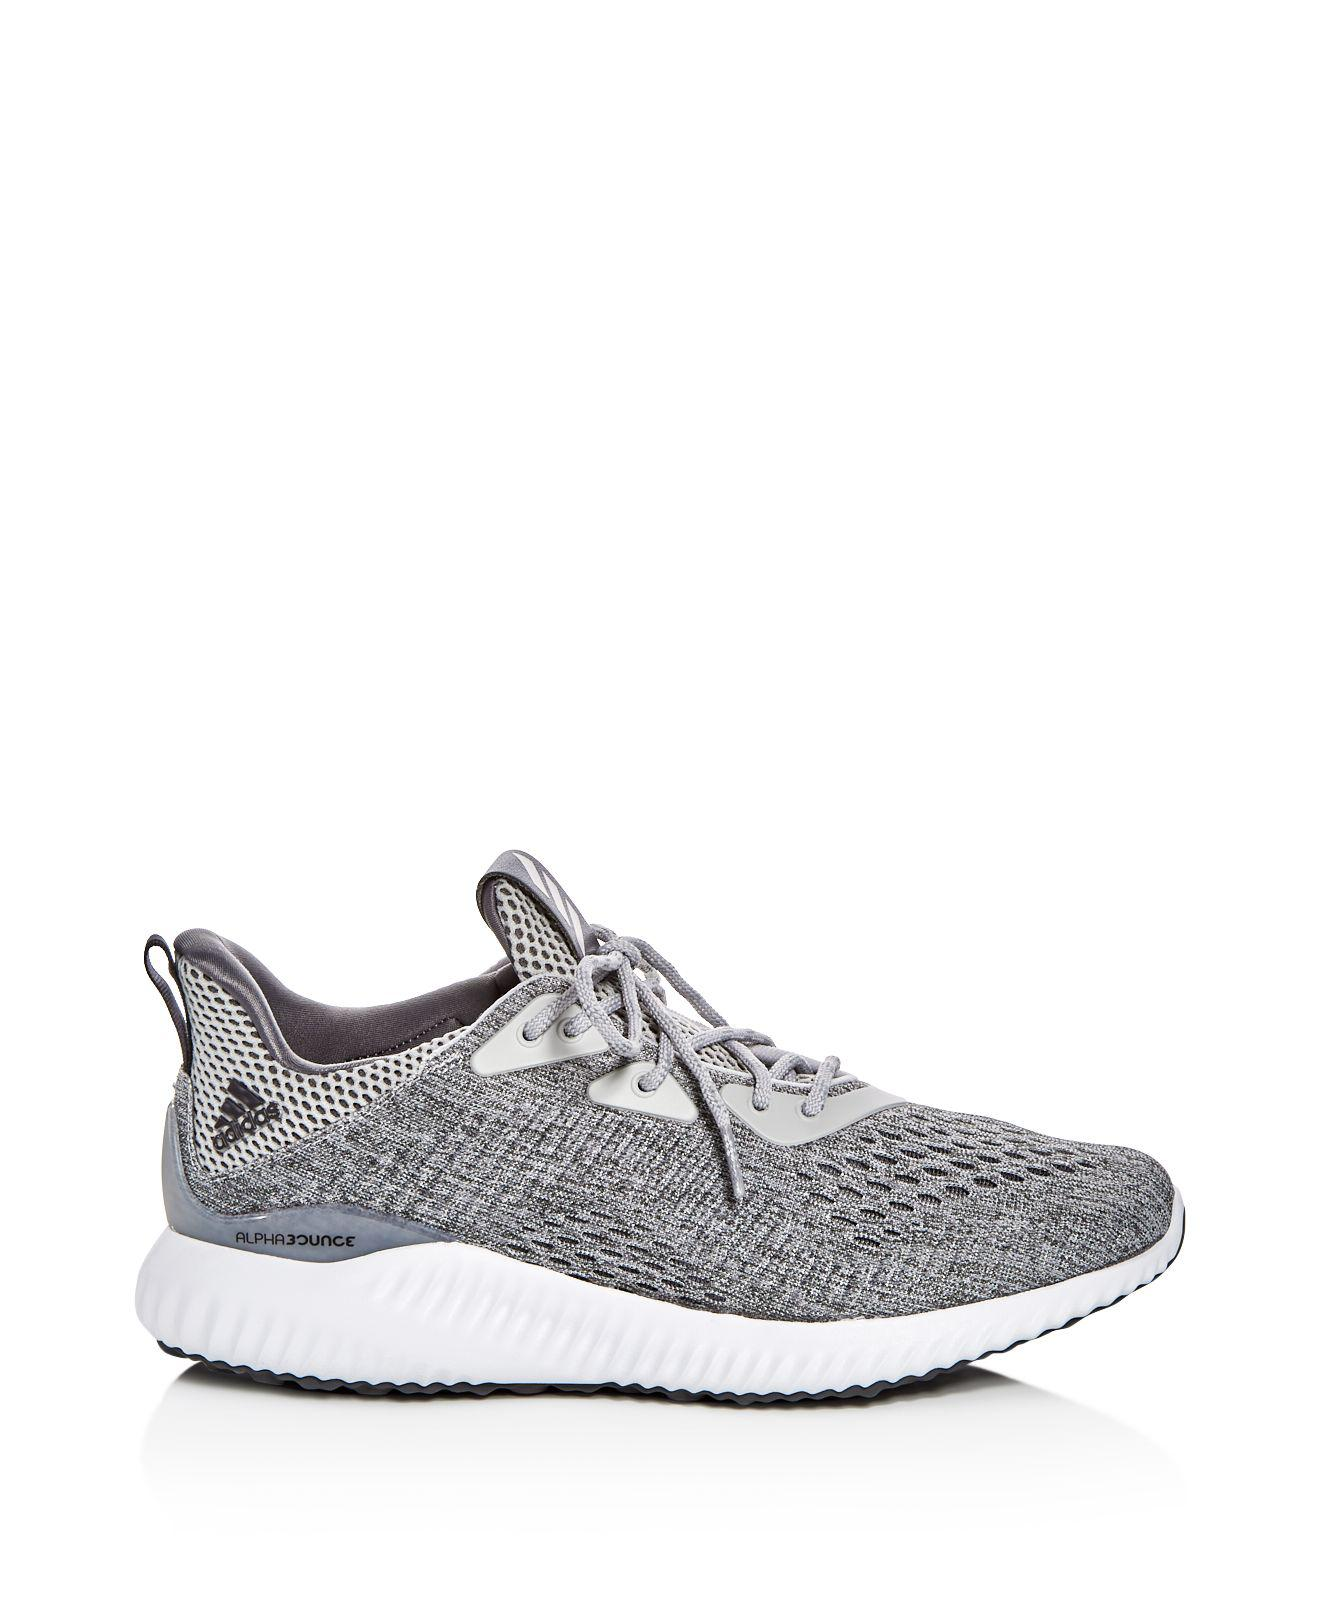 adidas Women's Alphabounce Engineered Mesh Lace Up Sneakers in Gray/White (Grey)